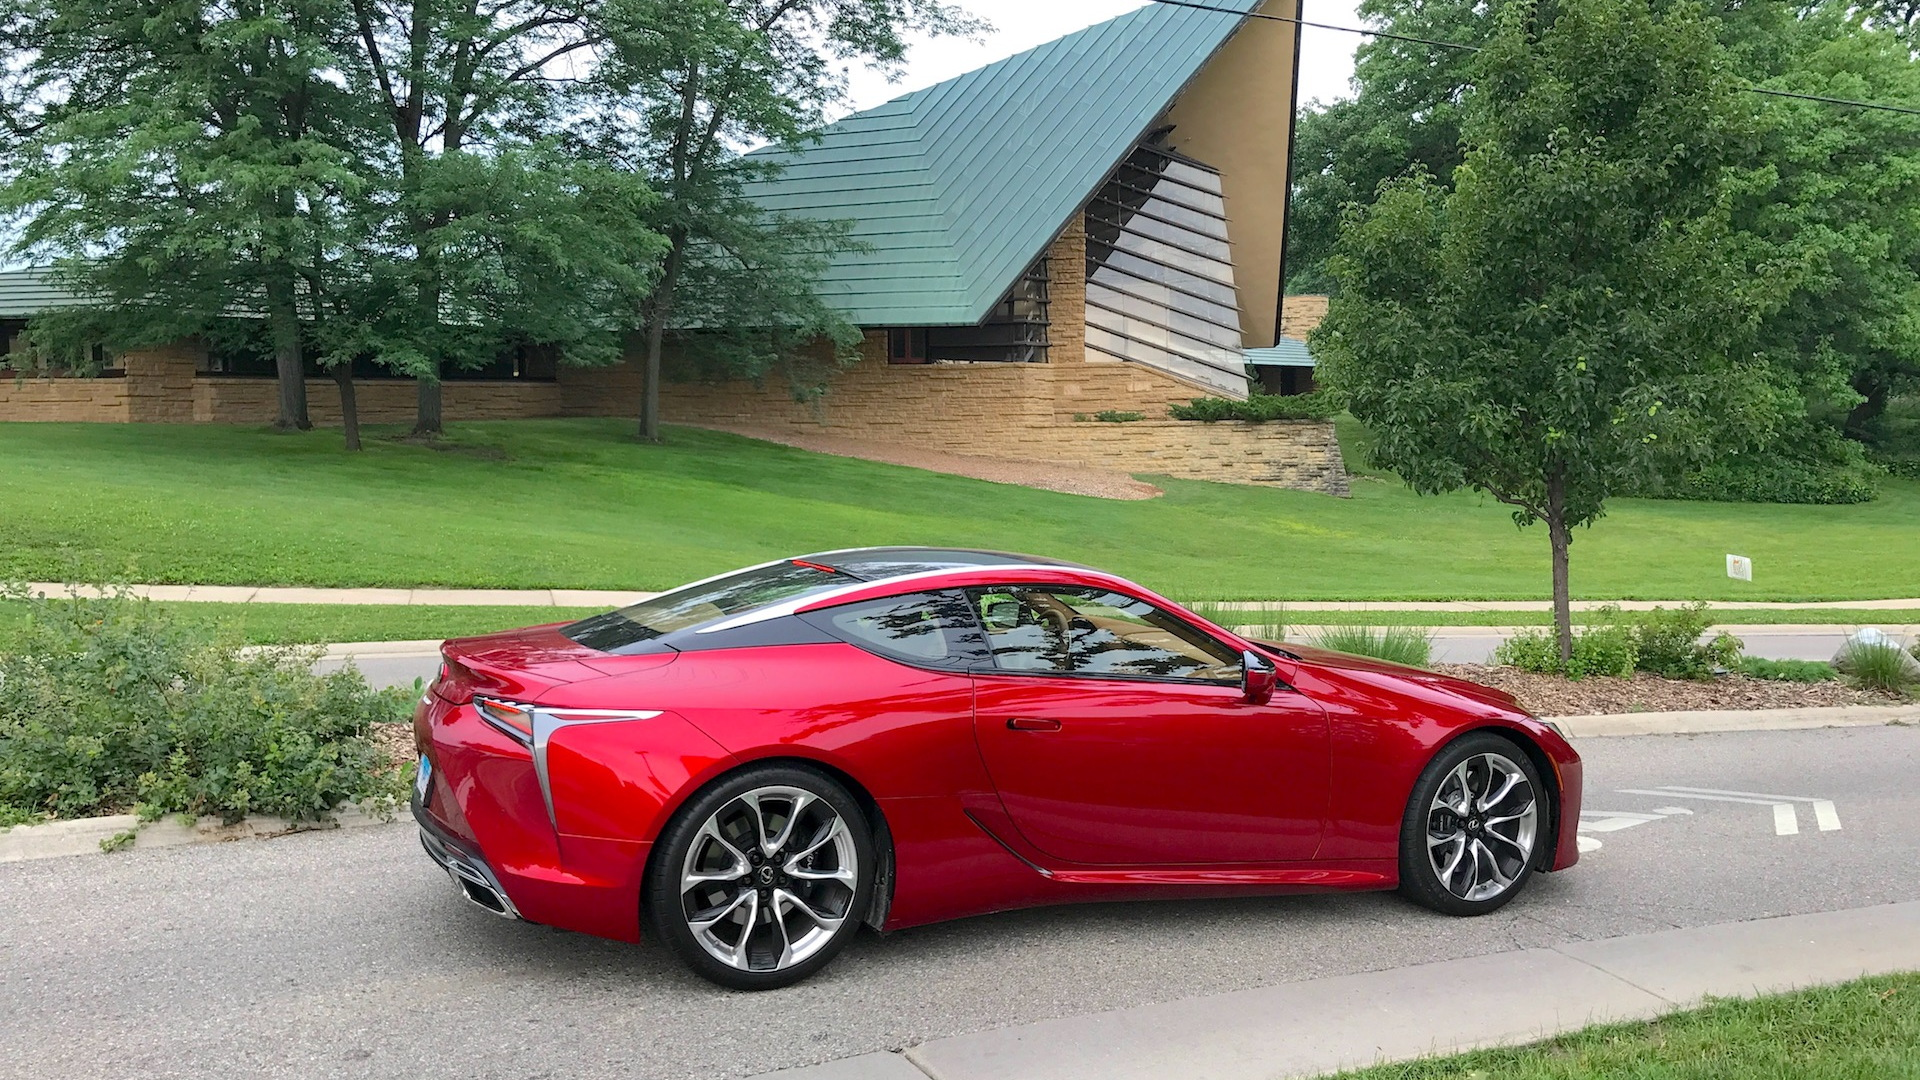 2018 Lexus LC 500 at the Unitarian Meeting House